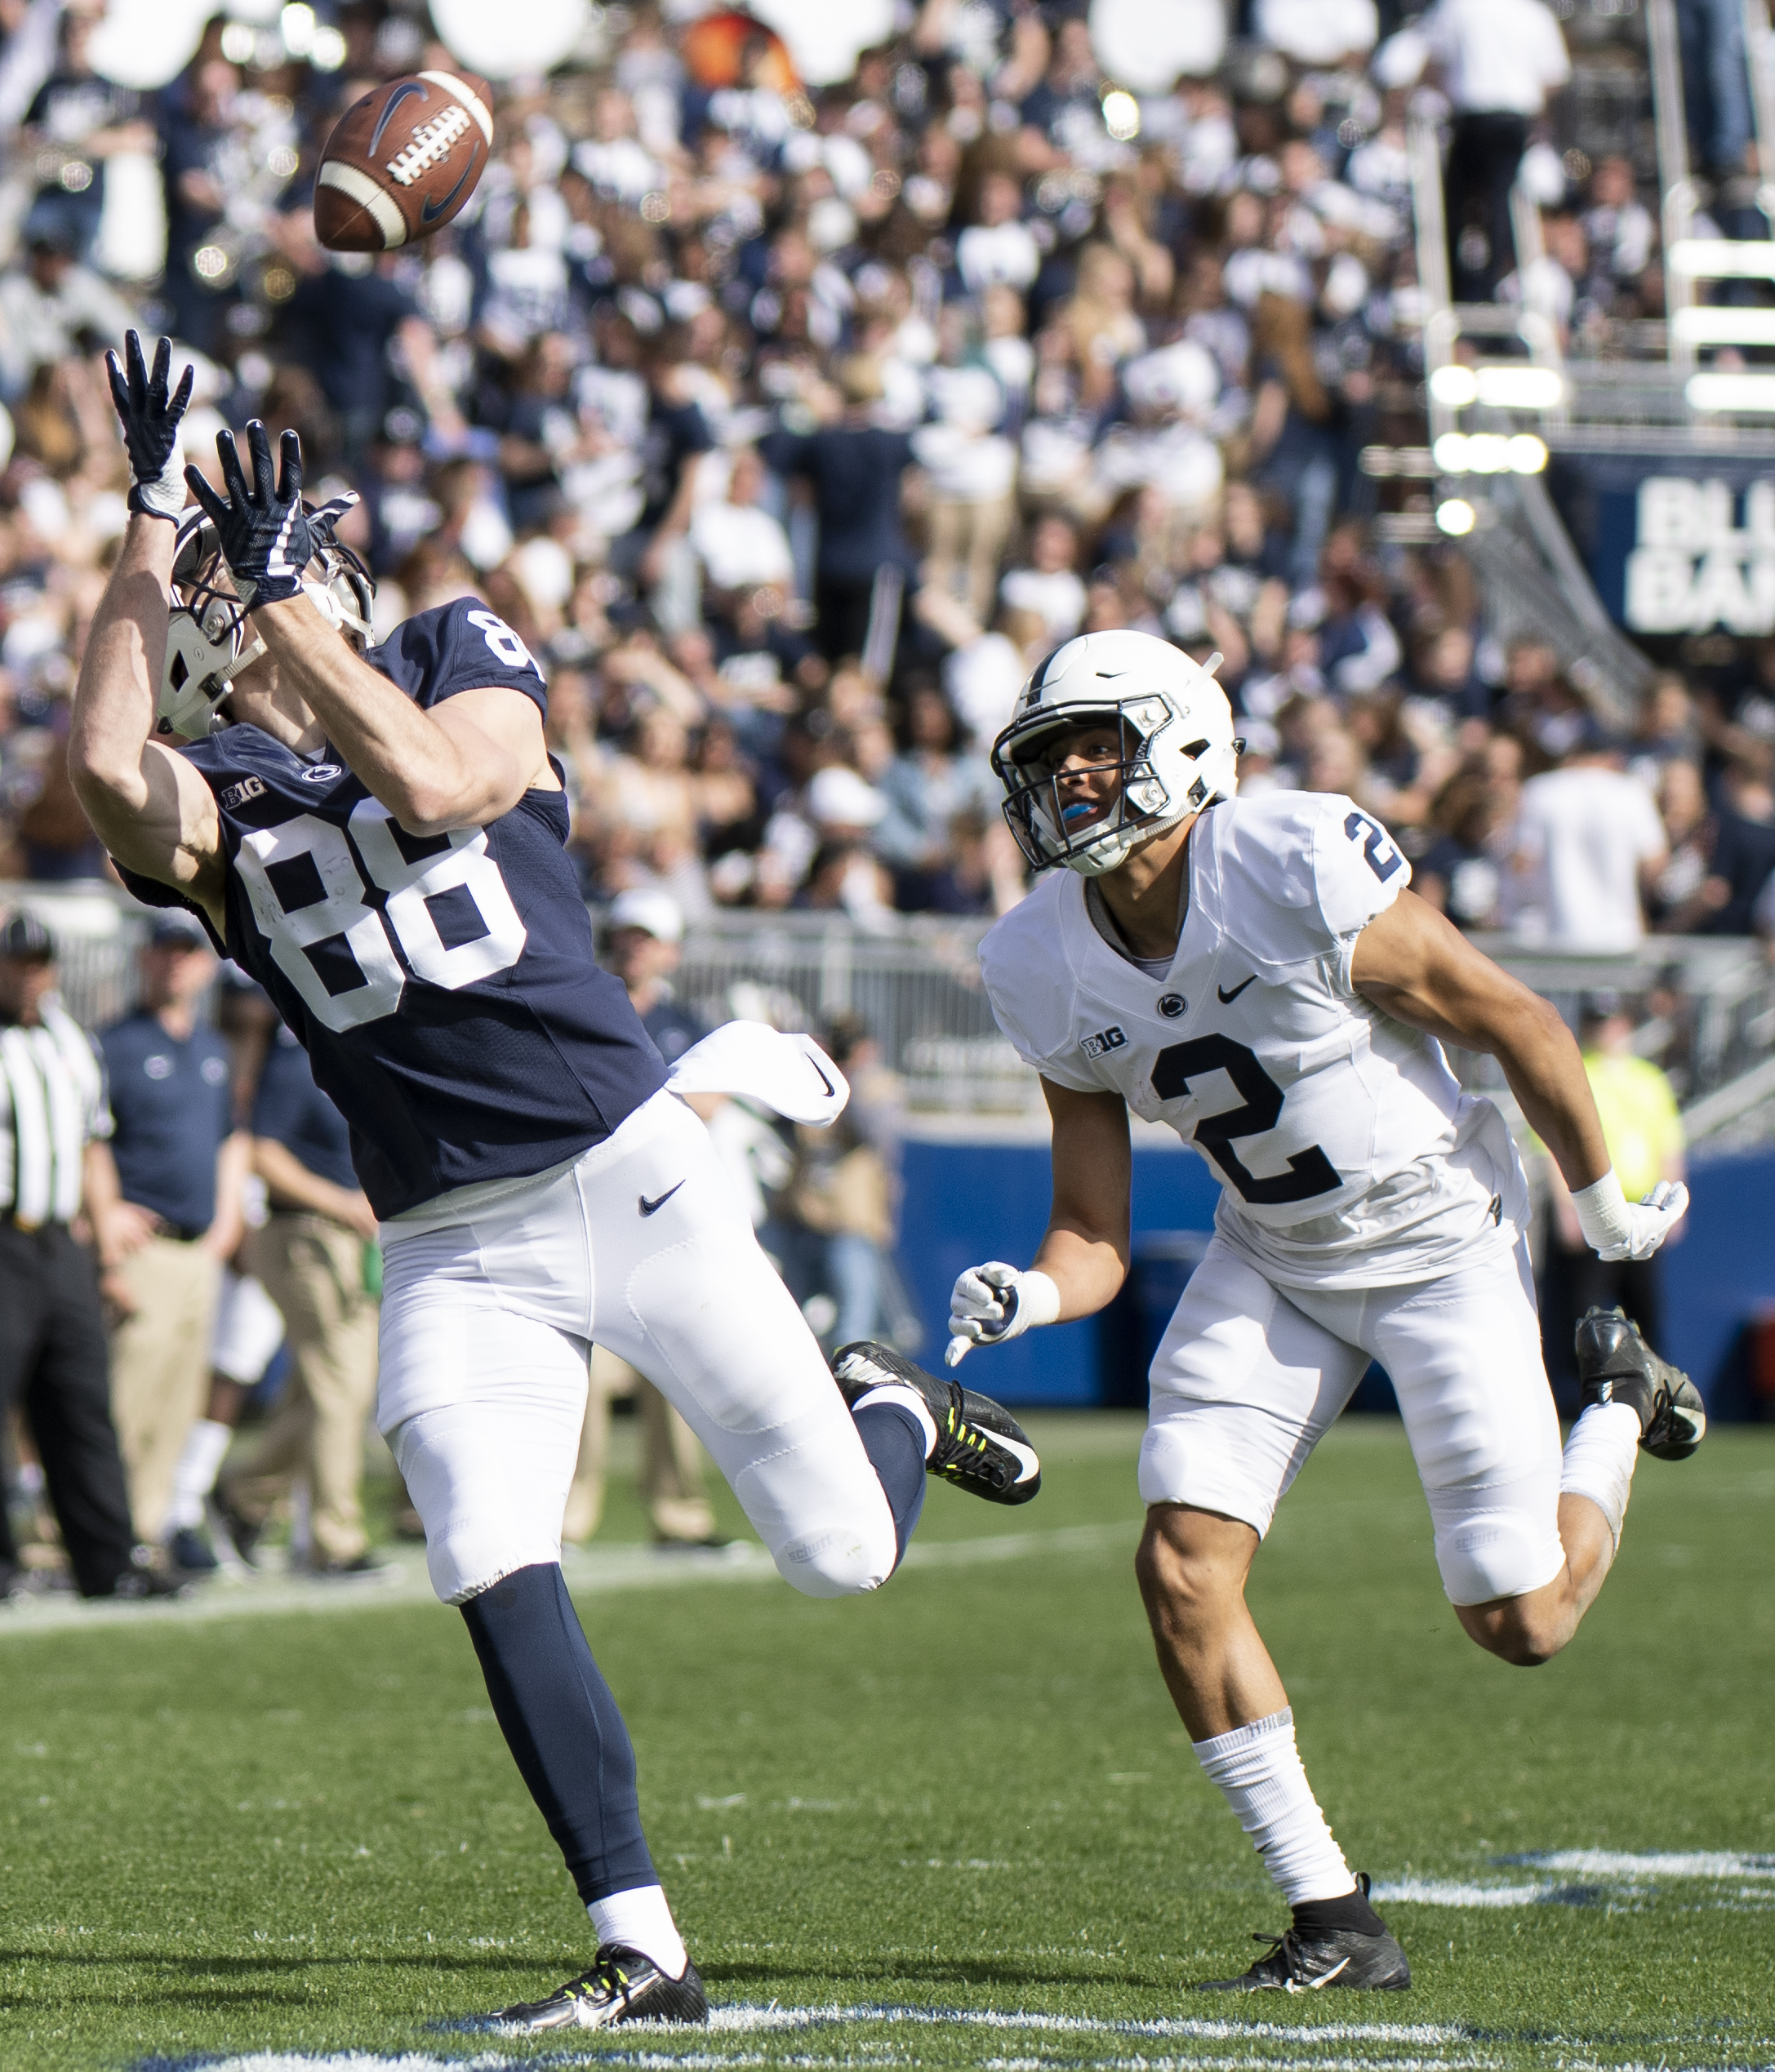 Wide receiver Dan Chisena (88) catches a 59-yard touchdown catch during the Penn State Blue-White game at Beaver Stadium on Saturday, April 13, 2019. With this catch the team presented him with a full scholarship. | Photo by: Noah Riffe